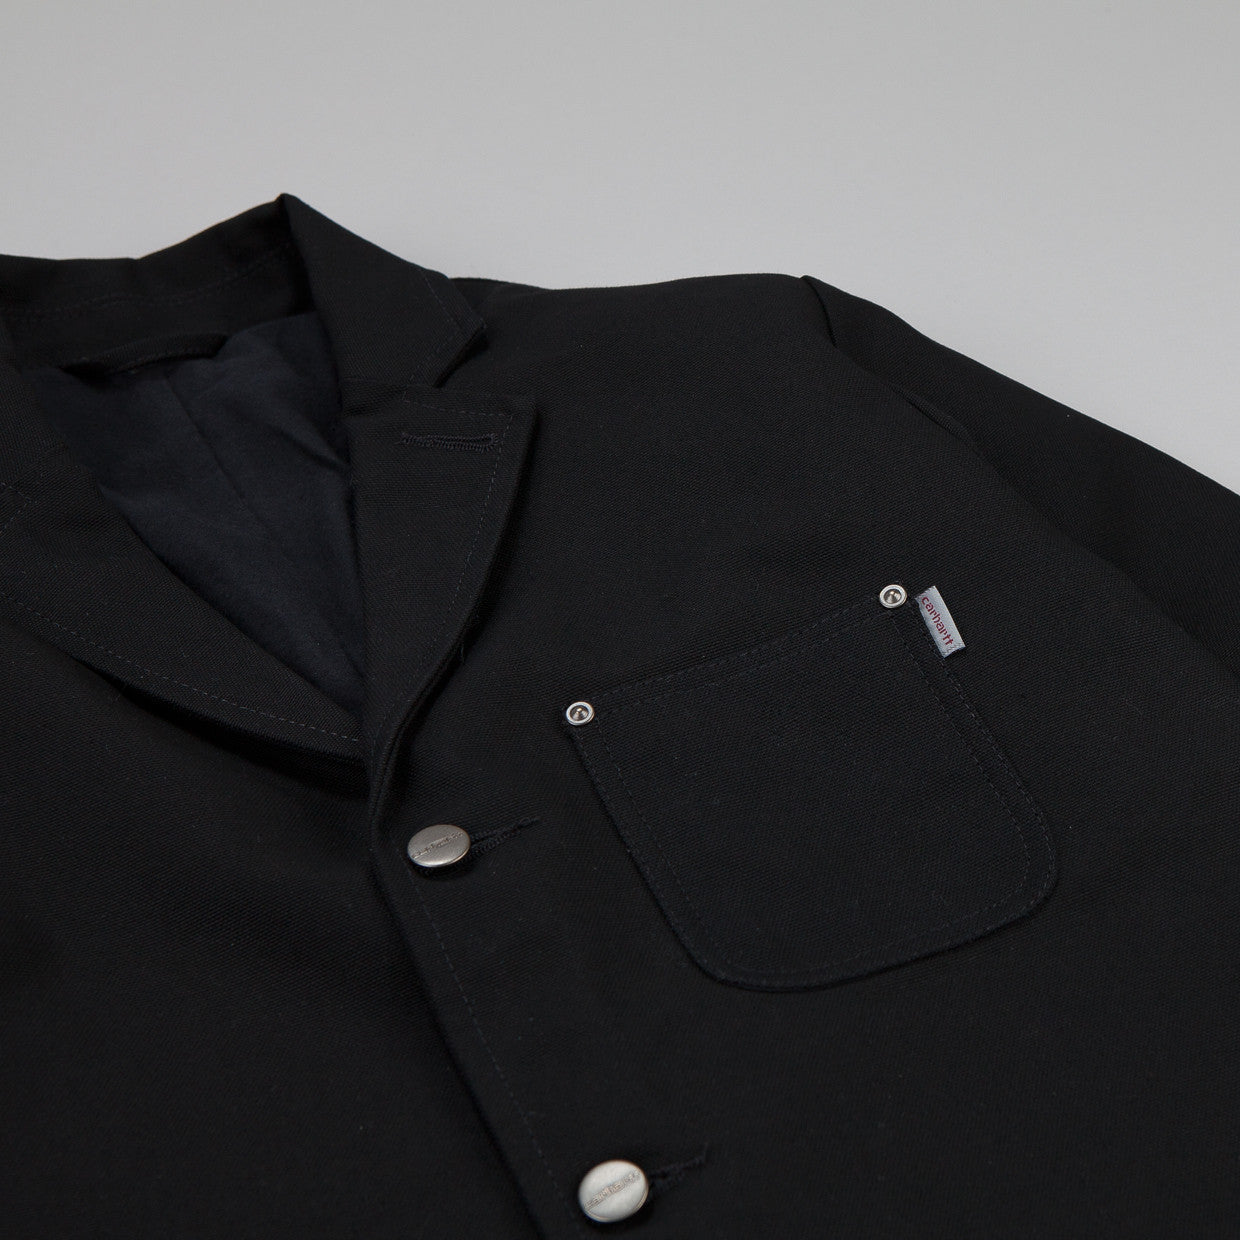 Carhartt Dock Blazer Black Rigid